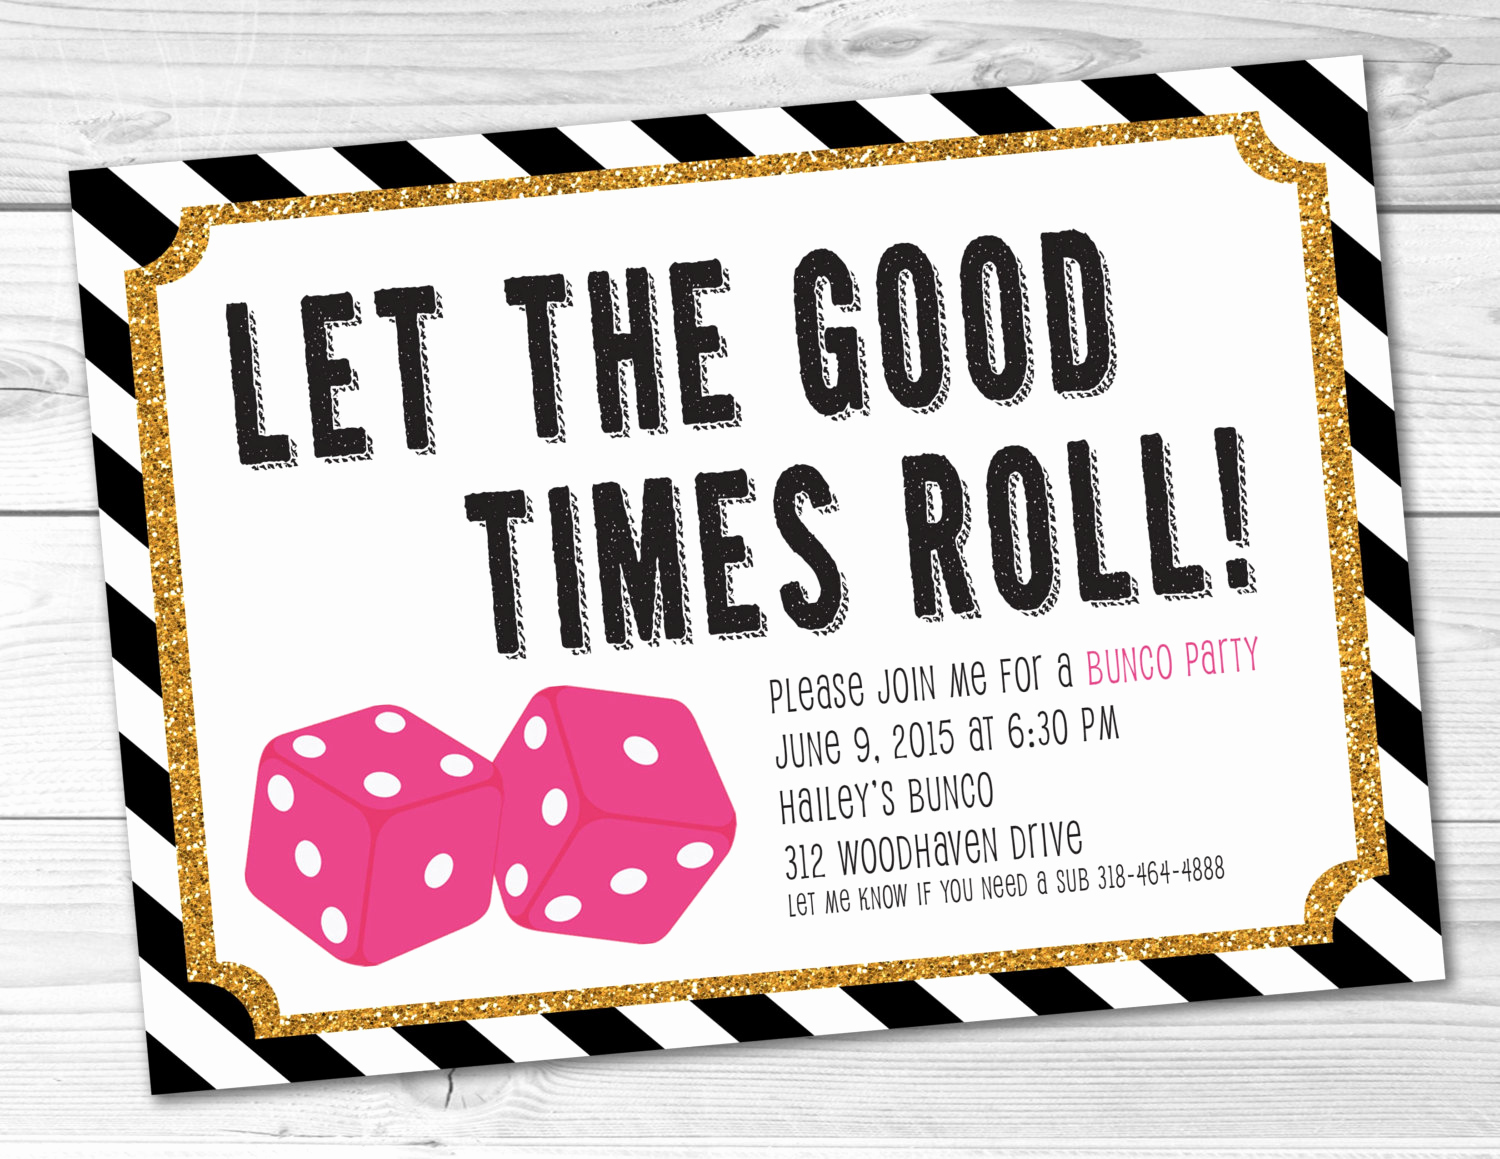 Game Night Invitation Wording Elegant Bunco Game Night Party Invitation